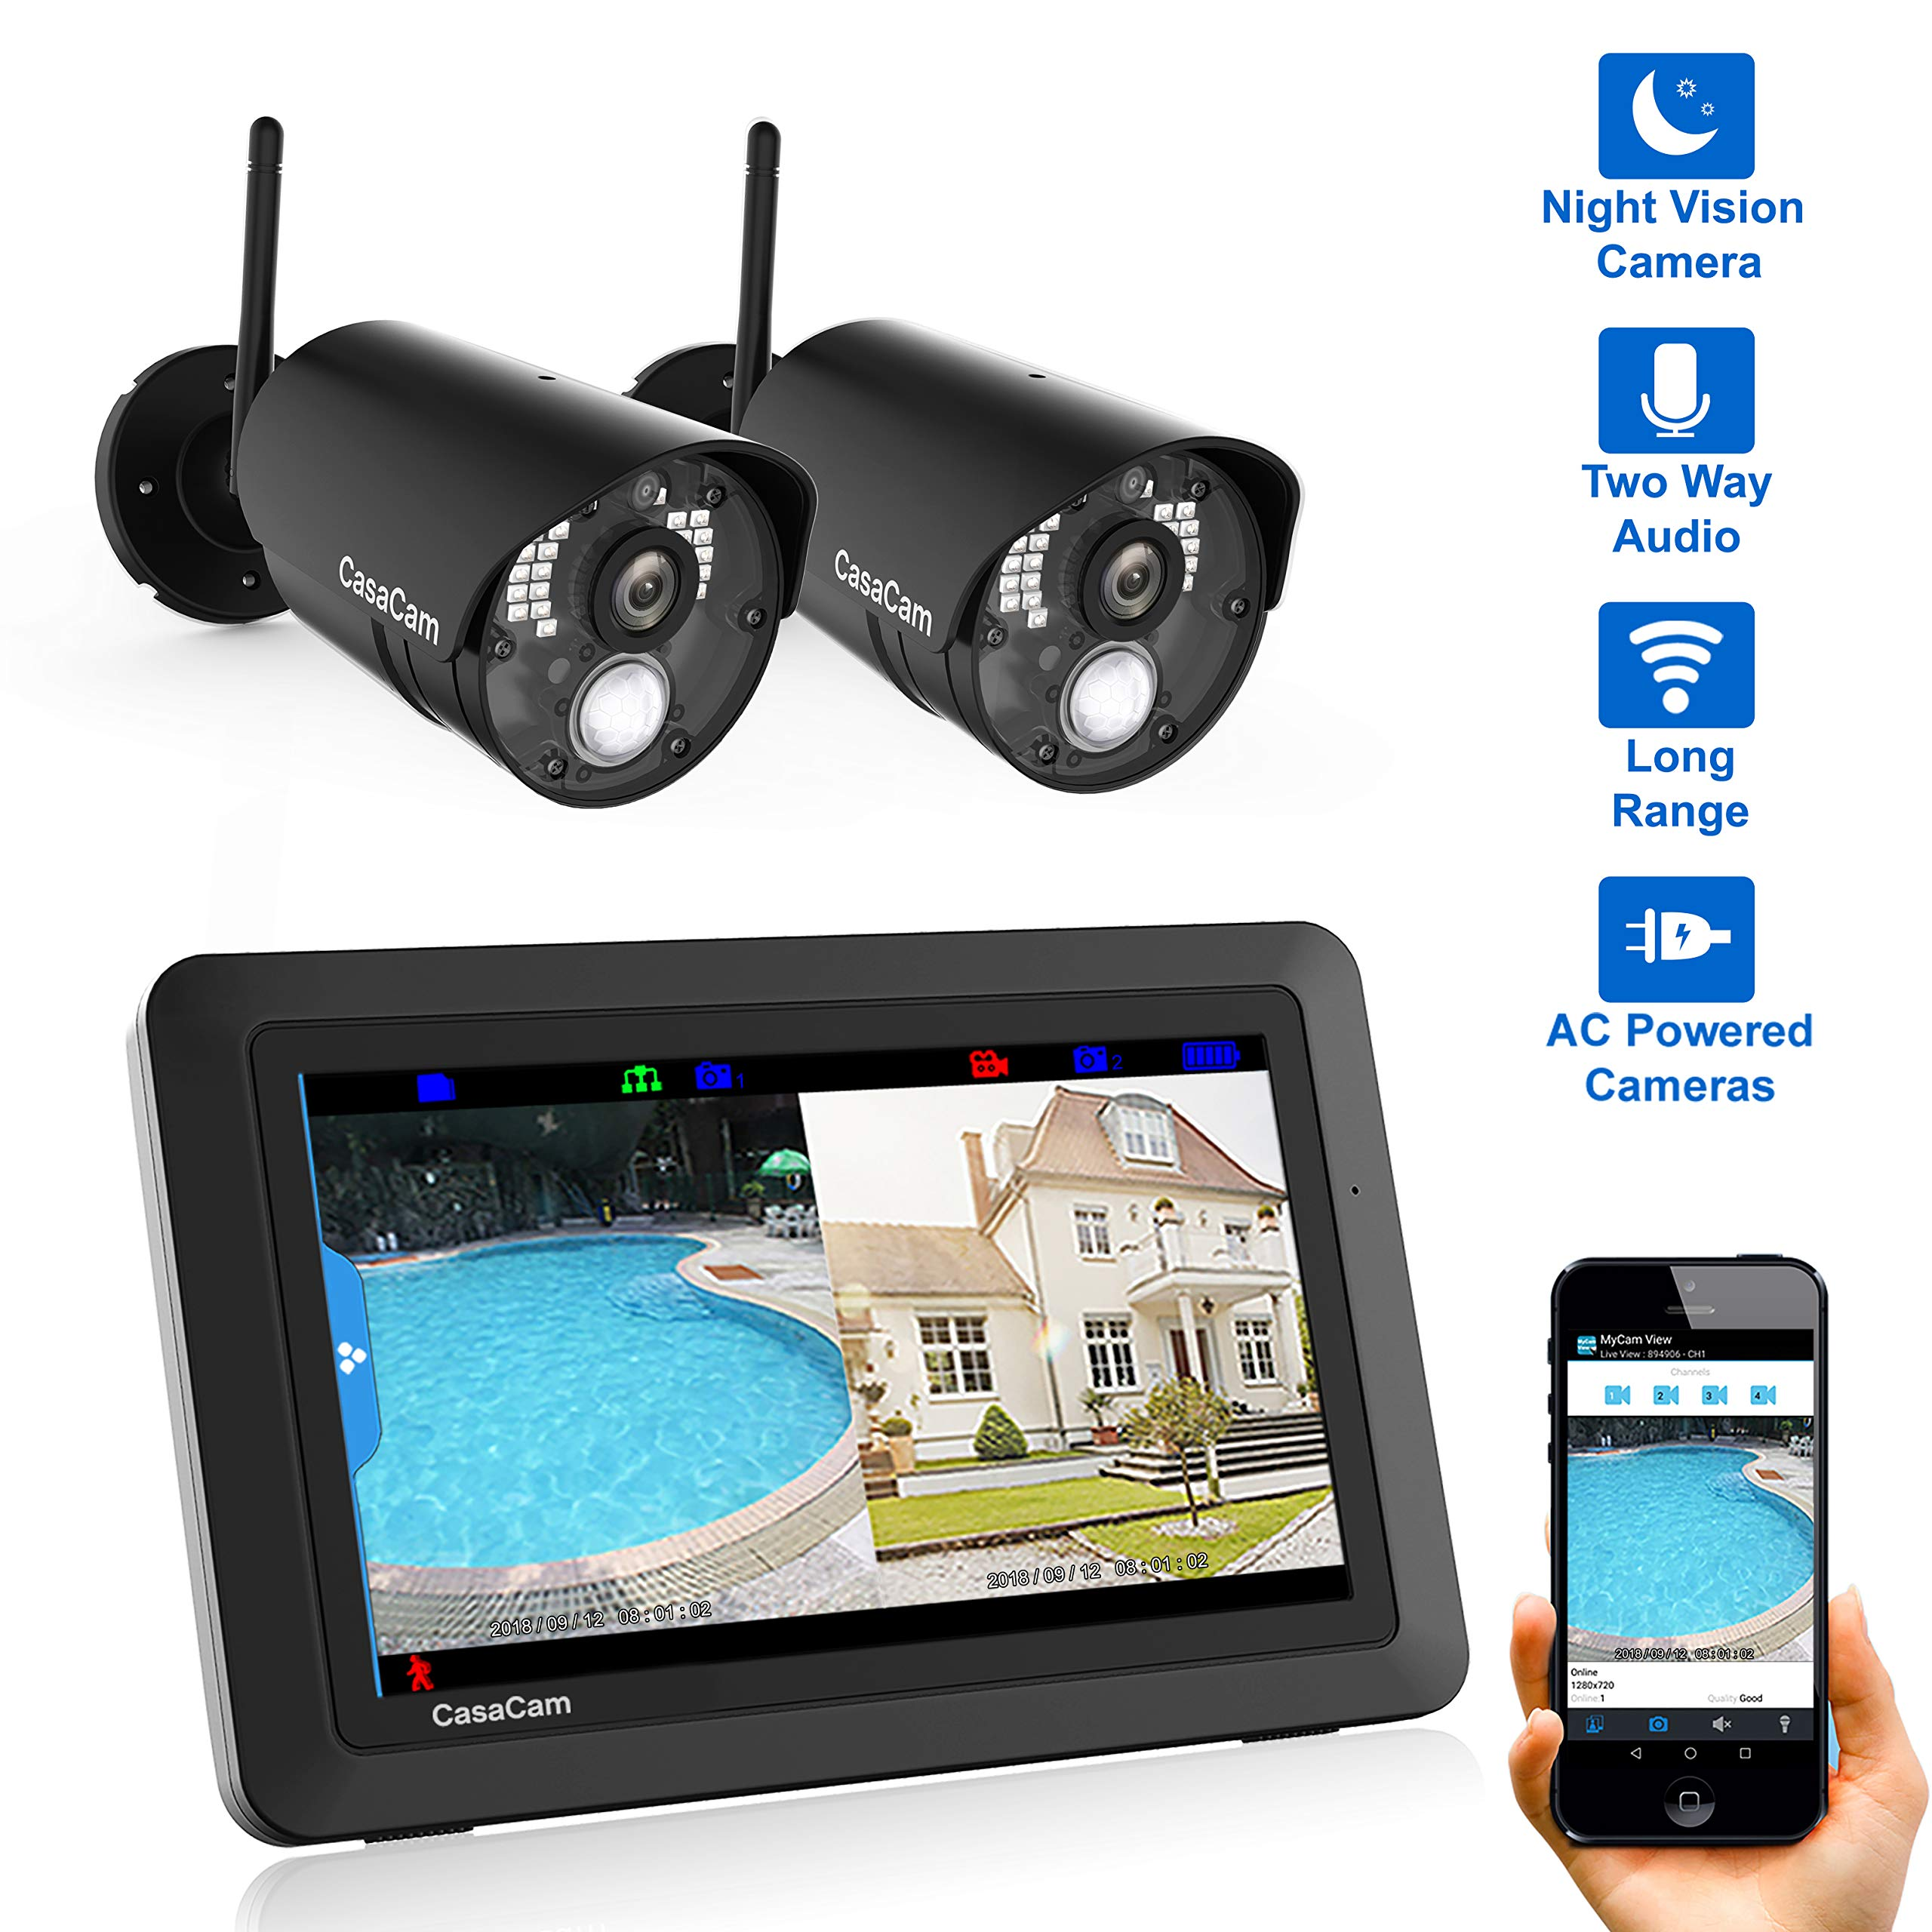 CasaCam VS802 Wireless Security Camera System with AC Powered HD Nightvision Cameras and 7'' Touchscreen Monitor (2-cam kit) by CasaCam (Image #1)